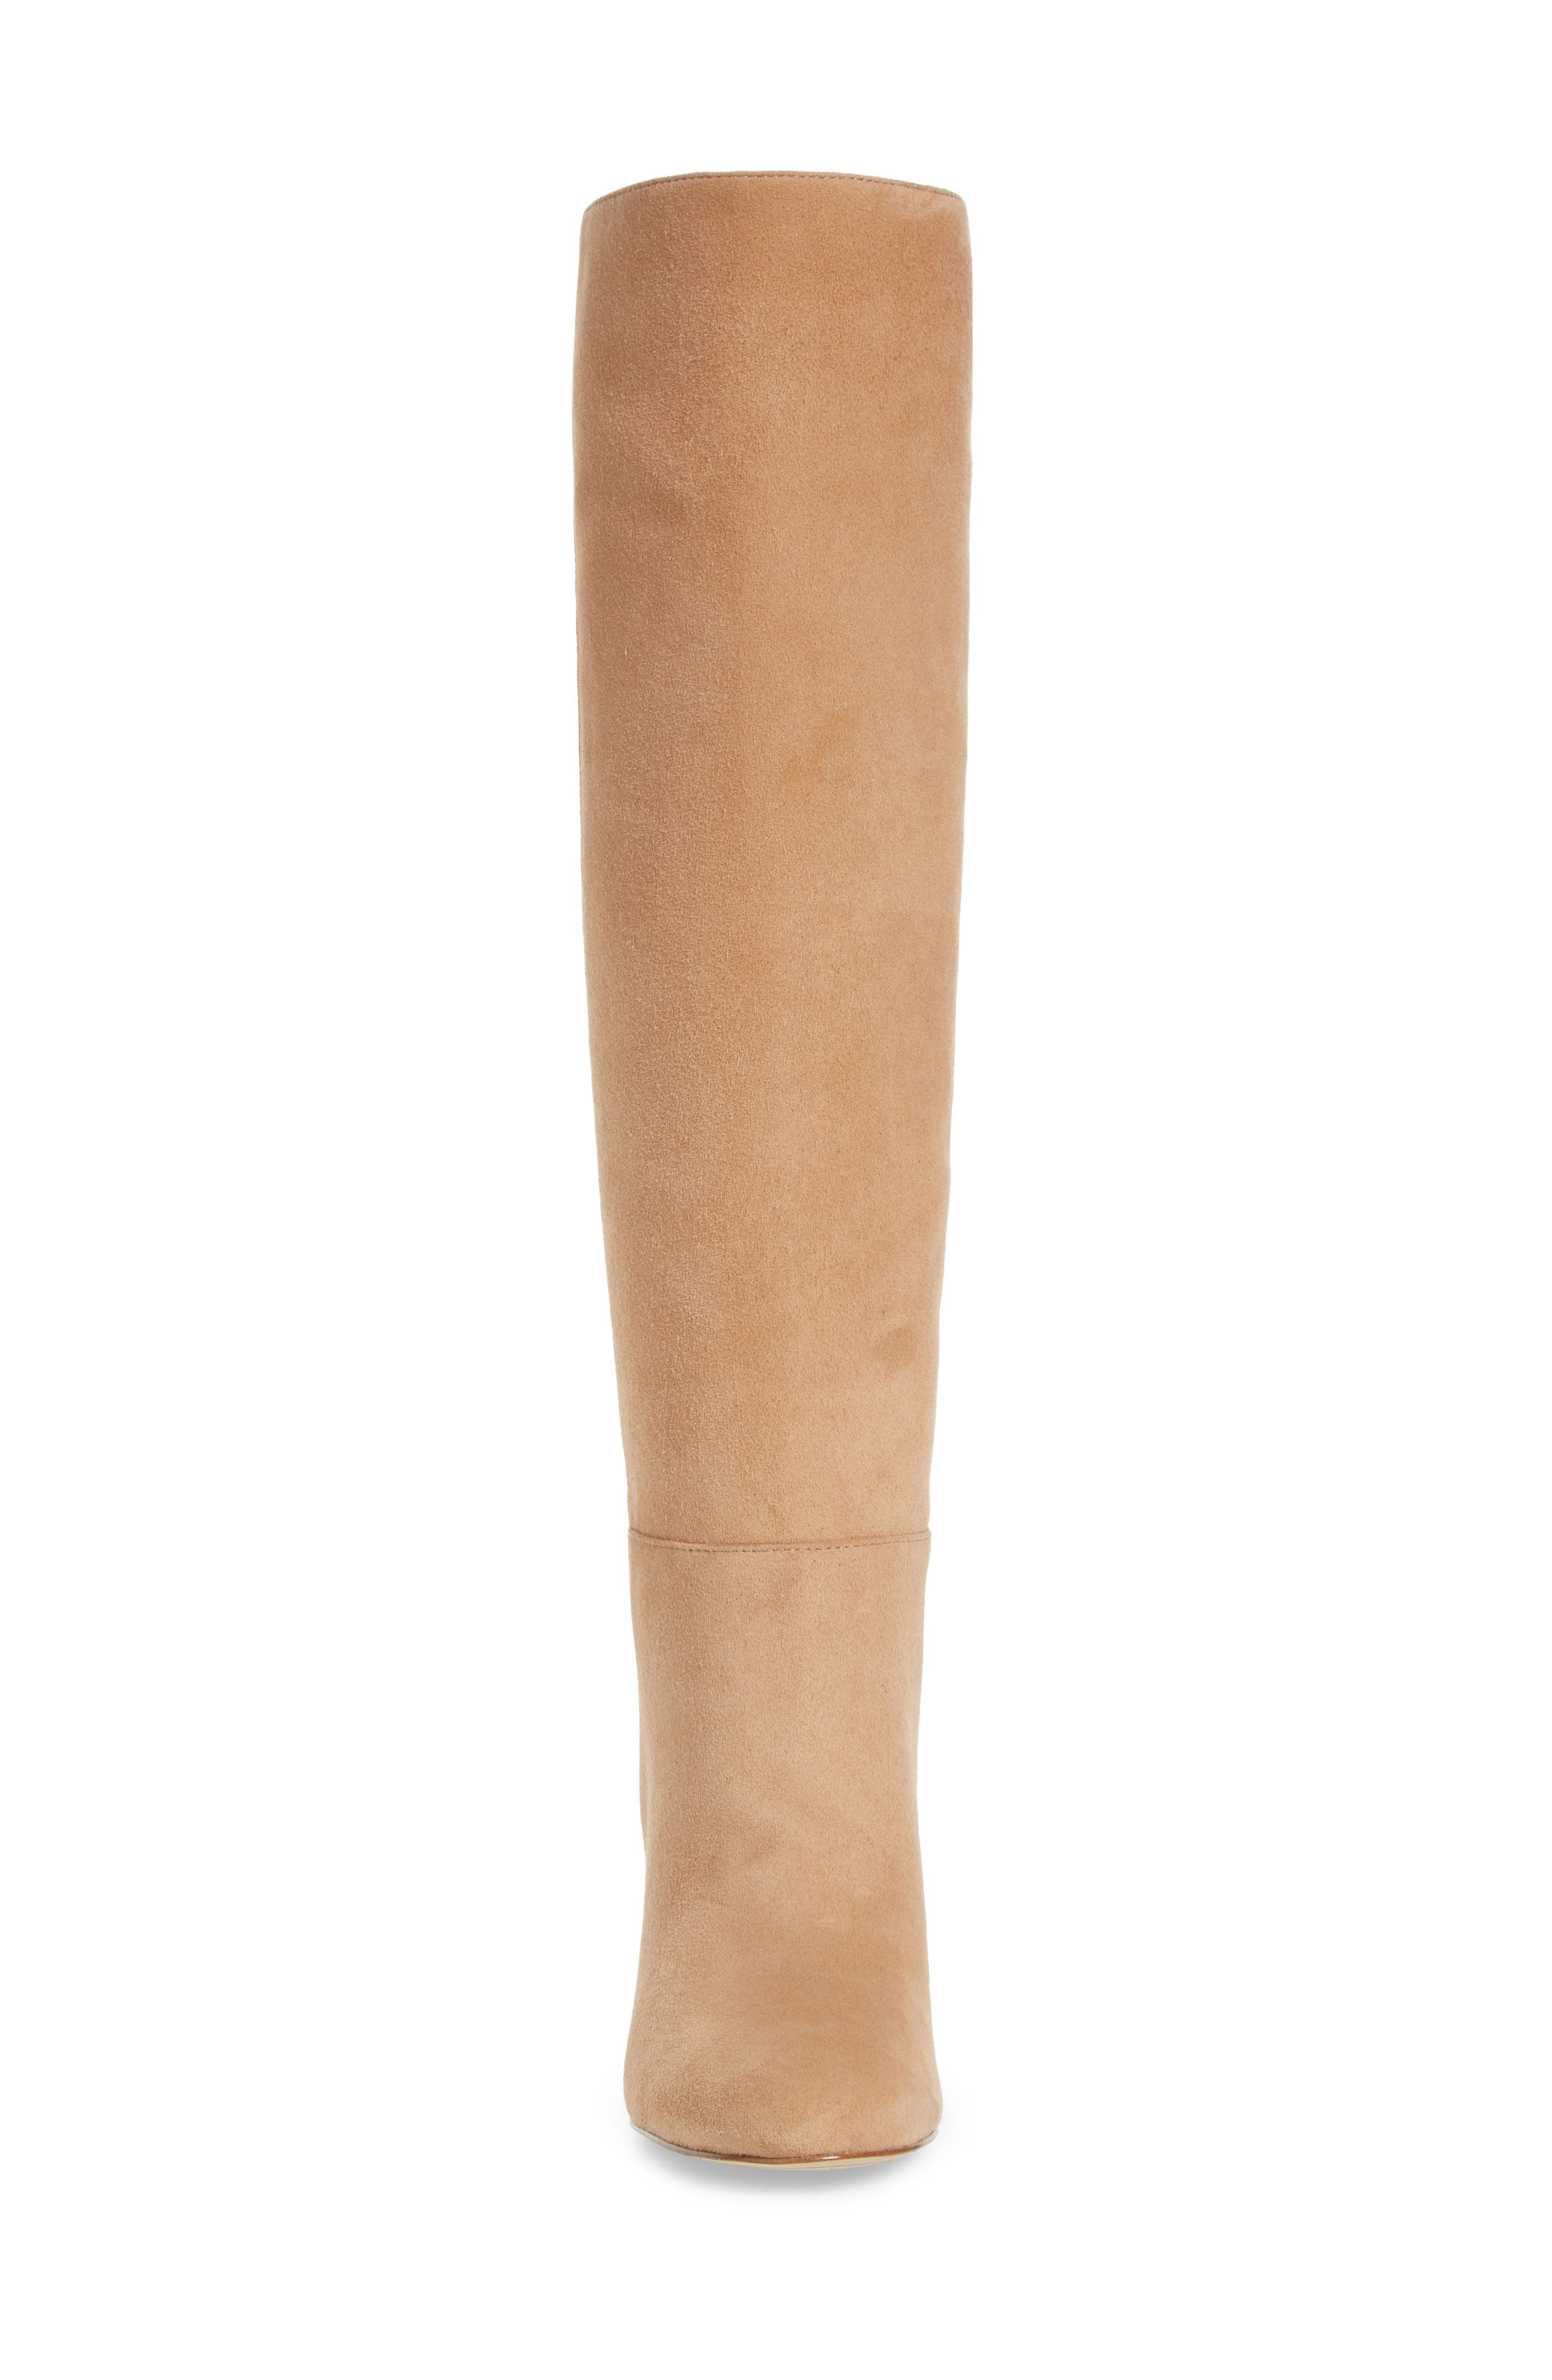 Caprice Knee-High Boot,                             Alternate thumbnail 4, color,                             GOLDEN CARAMEL SUEDE